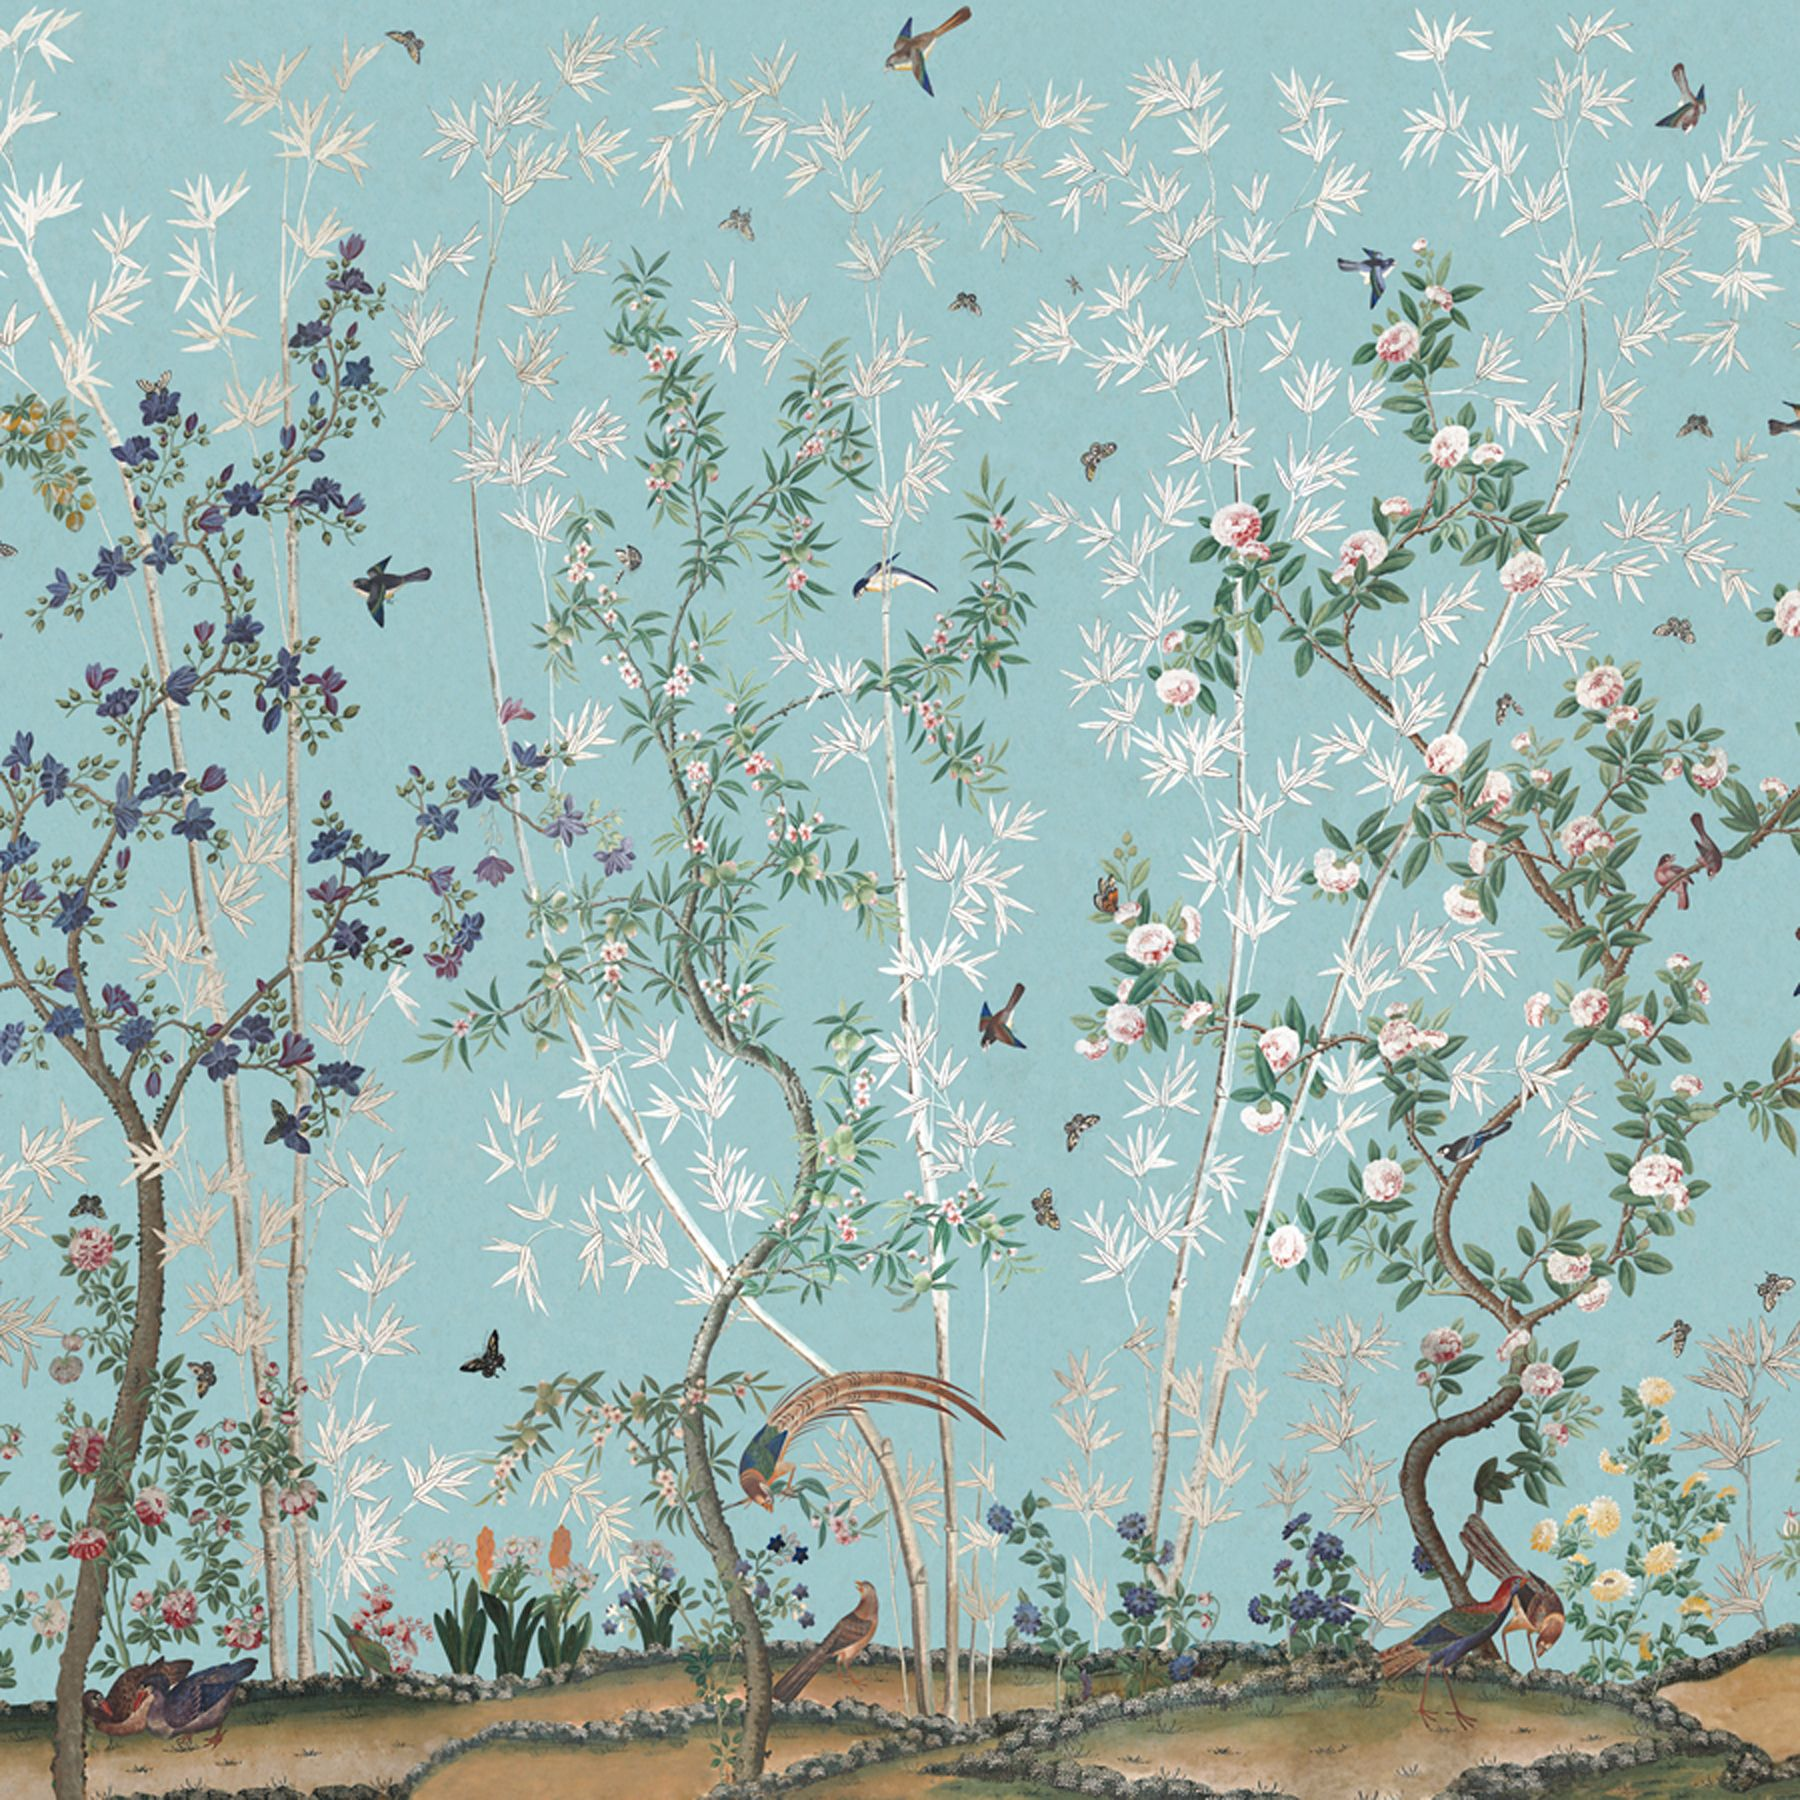 Eastern Eden | IK2500 in Blue | Panel by Iksel by Schumacher | This lush Tree of Life design was inspired by an early 19th-century hand-painted Chinese ...